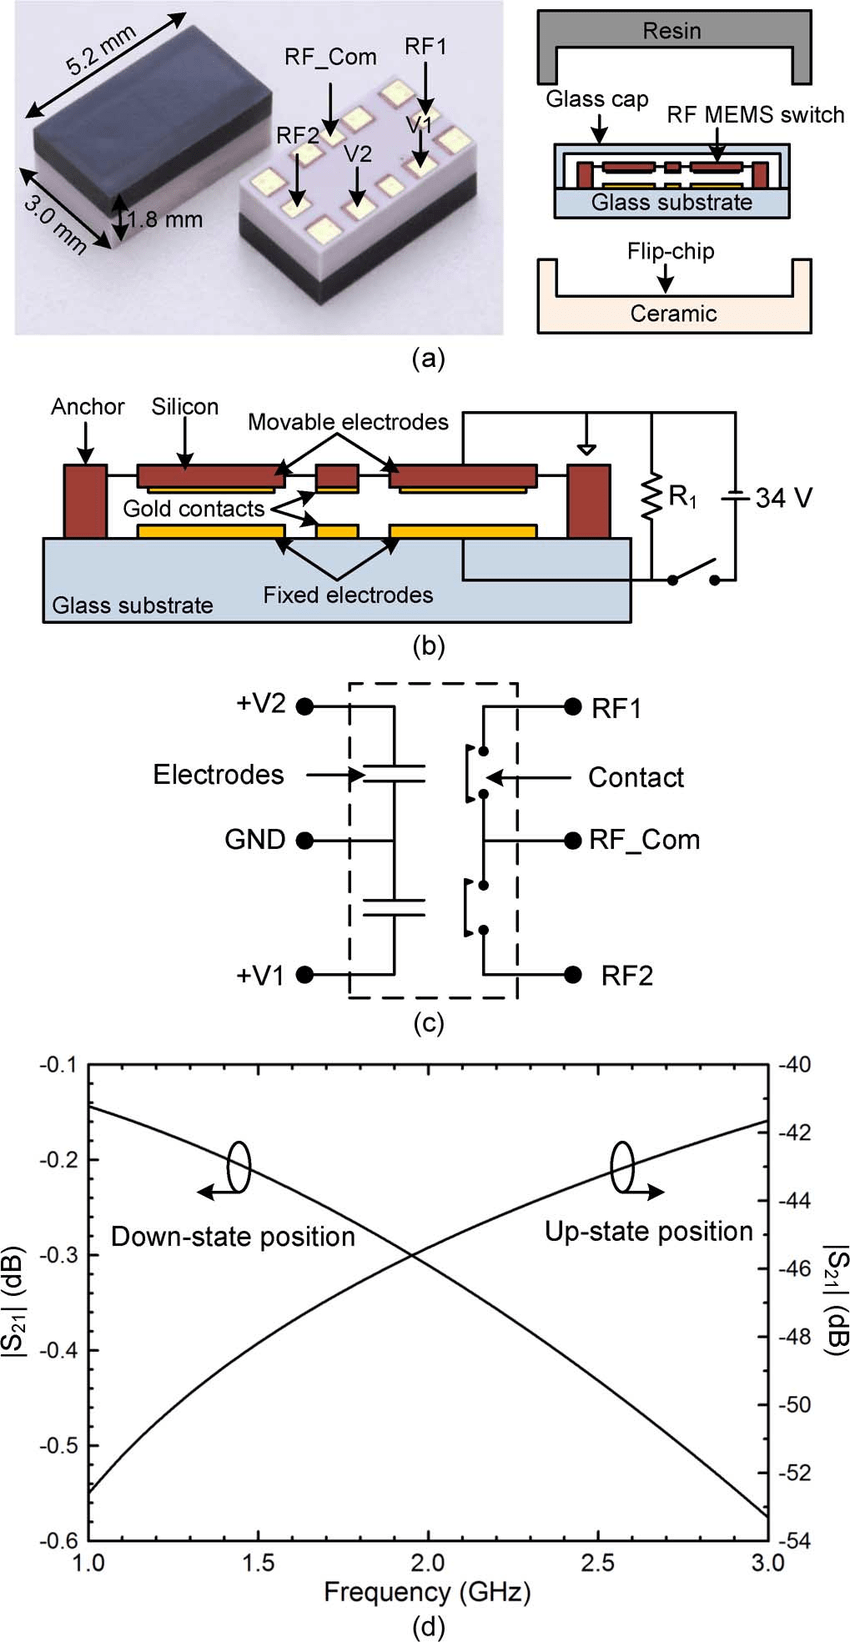 medium resolution of  a photograph and structure of the packaged spdt rf mems switch b